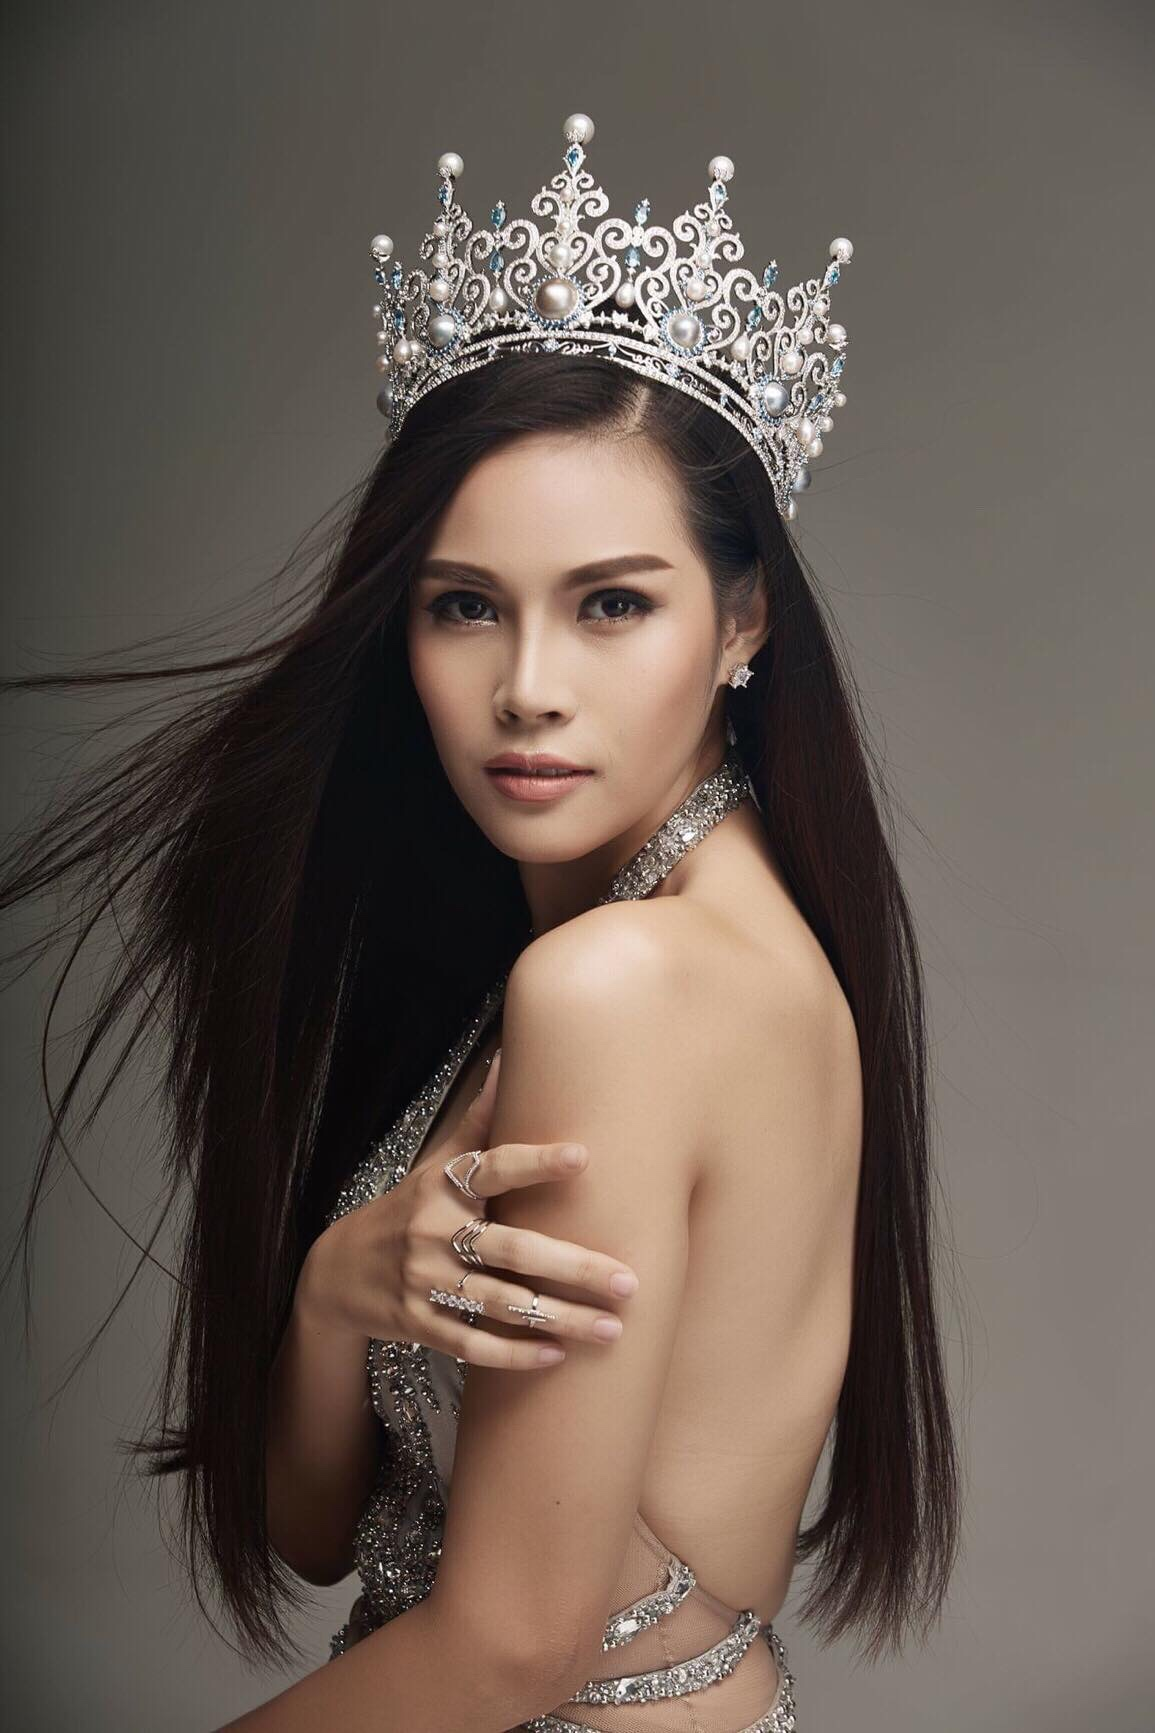 The most beautiful asian woman in the world